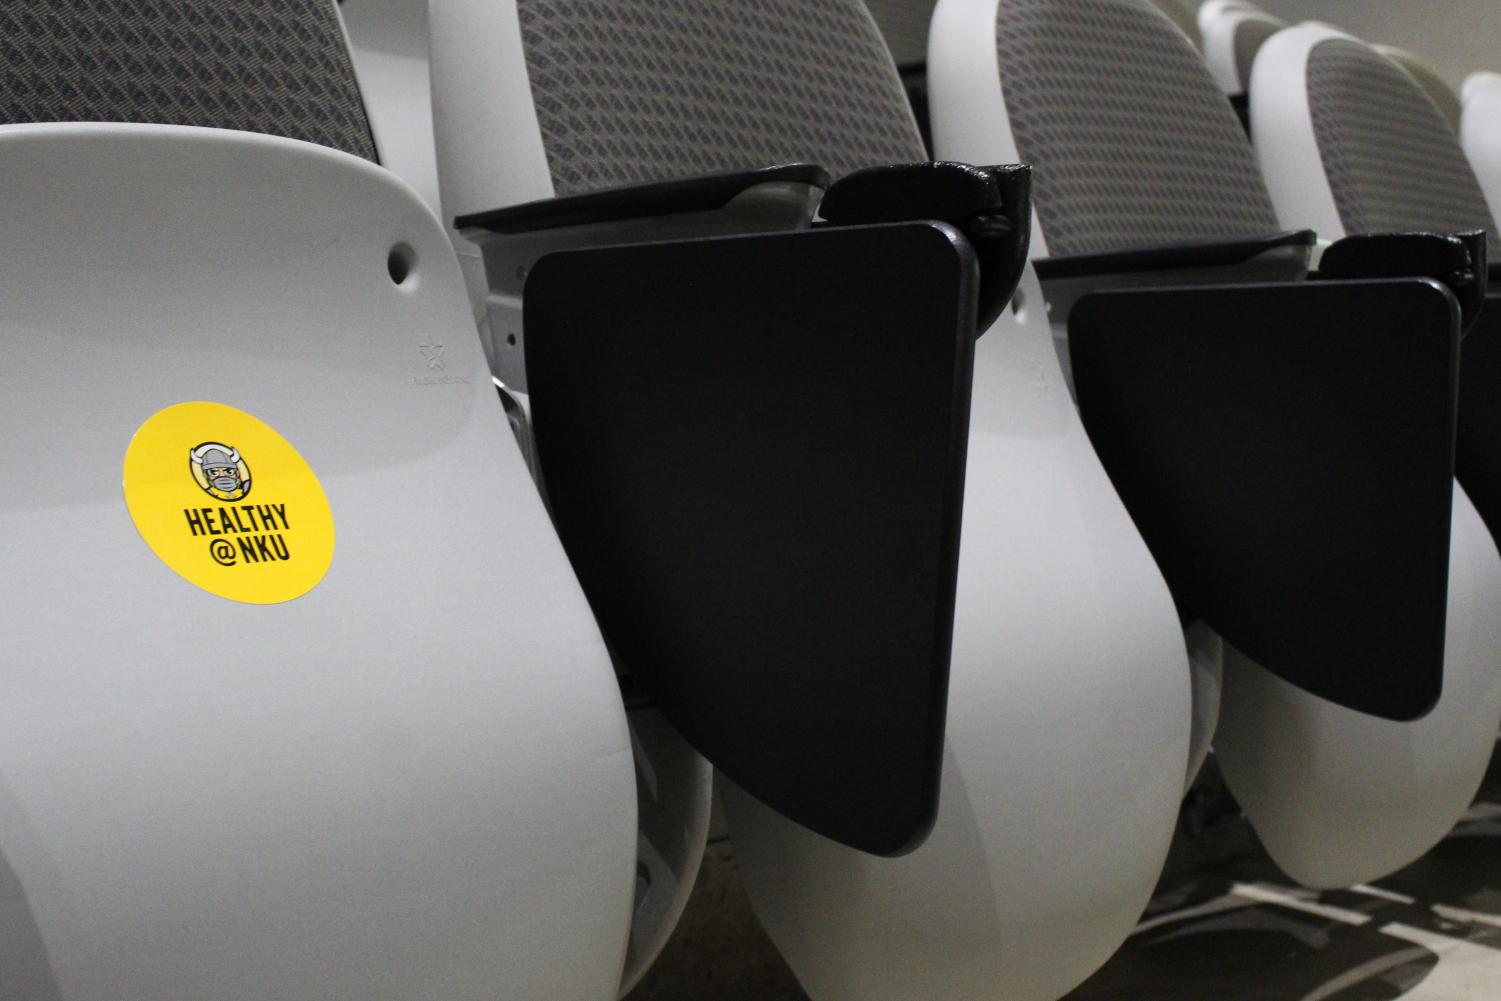 In MEP 200, there are stickers indicating what seats are available to be sat in.